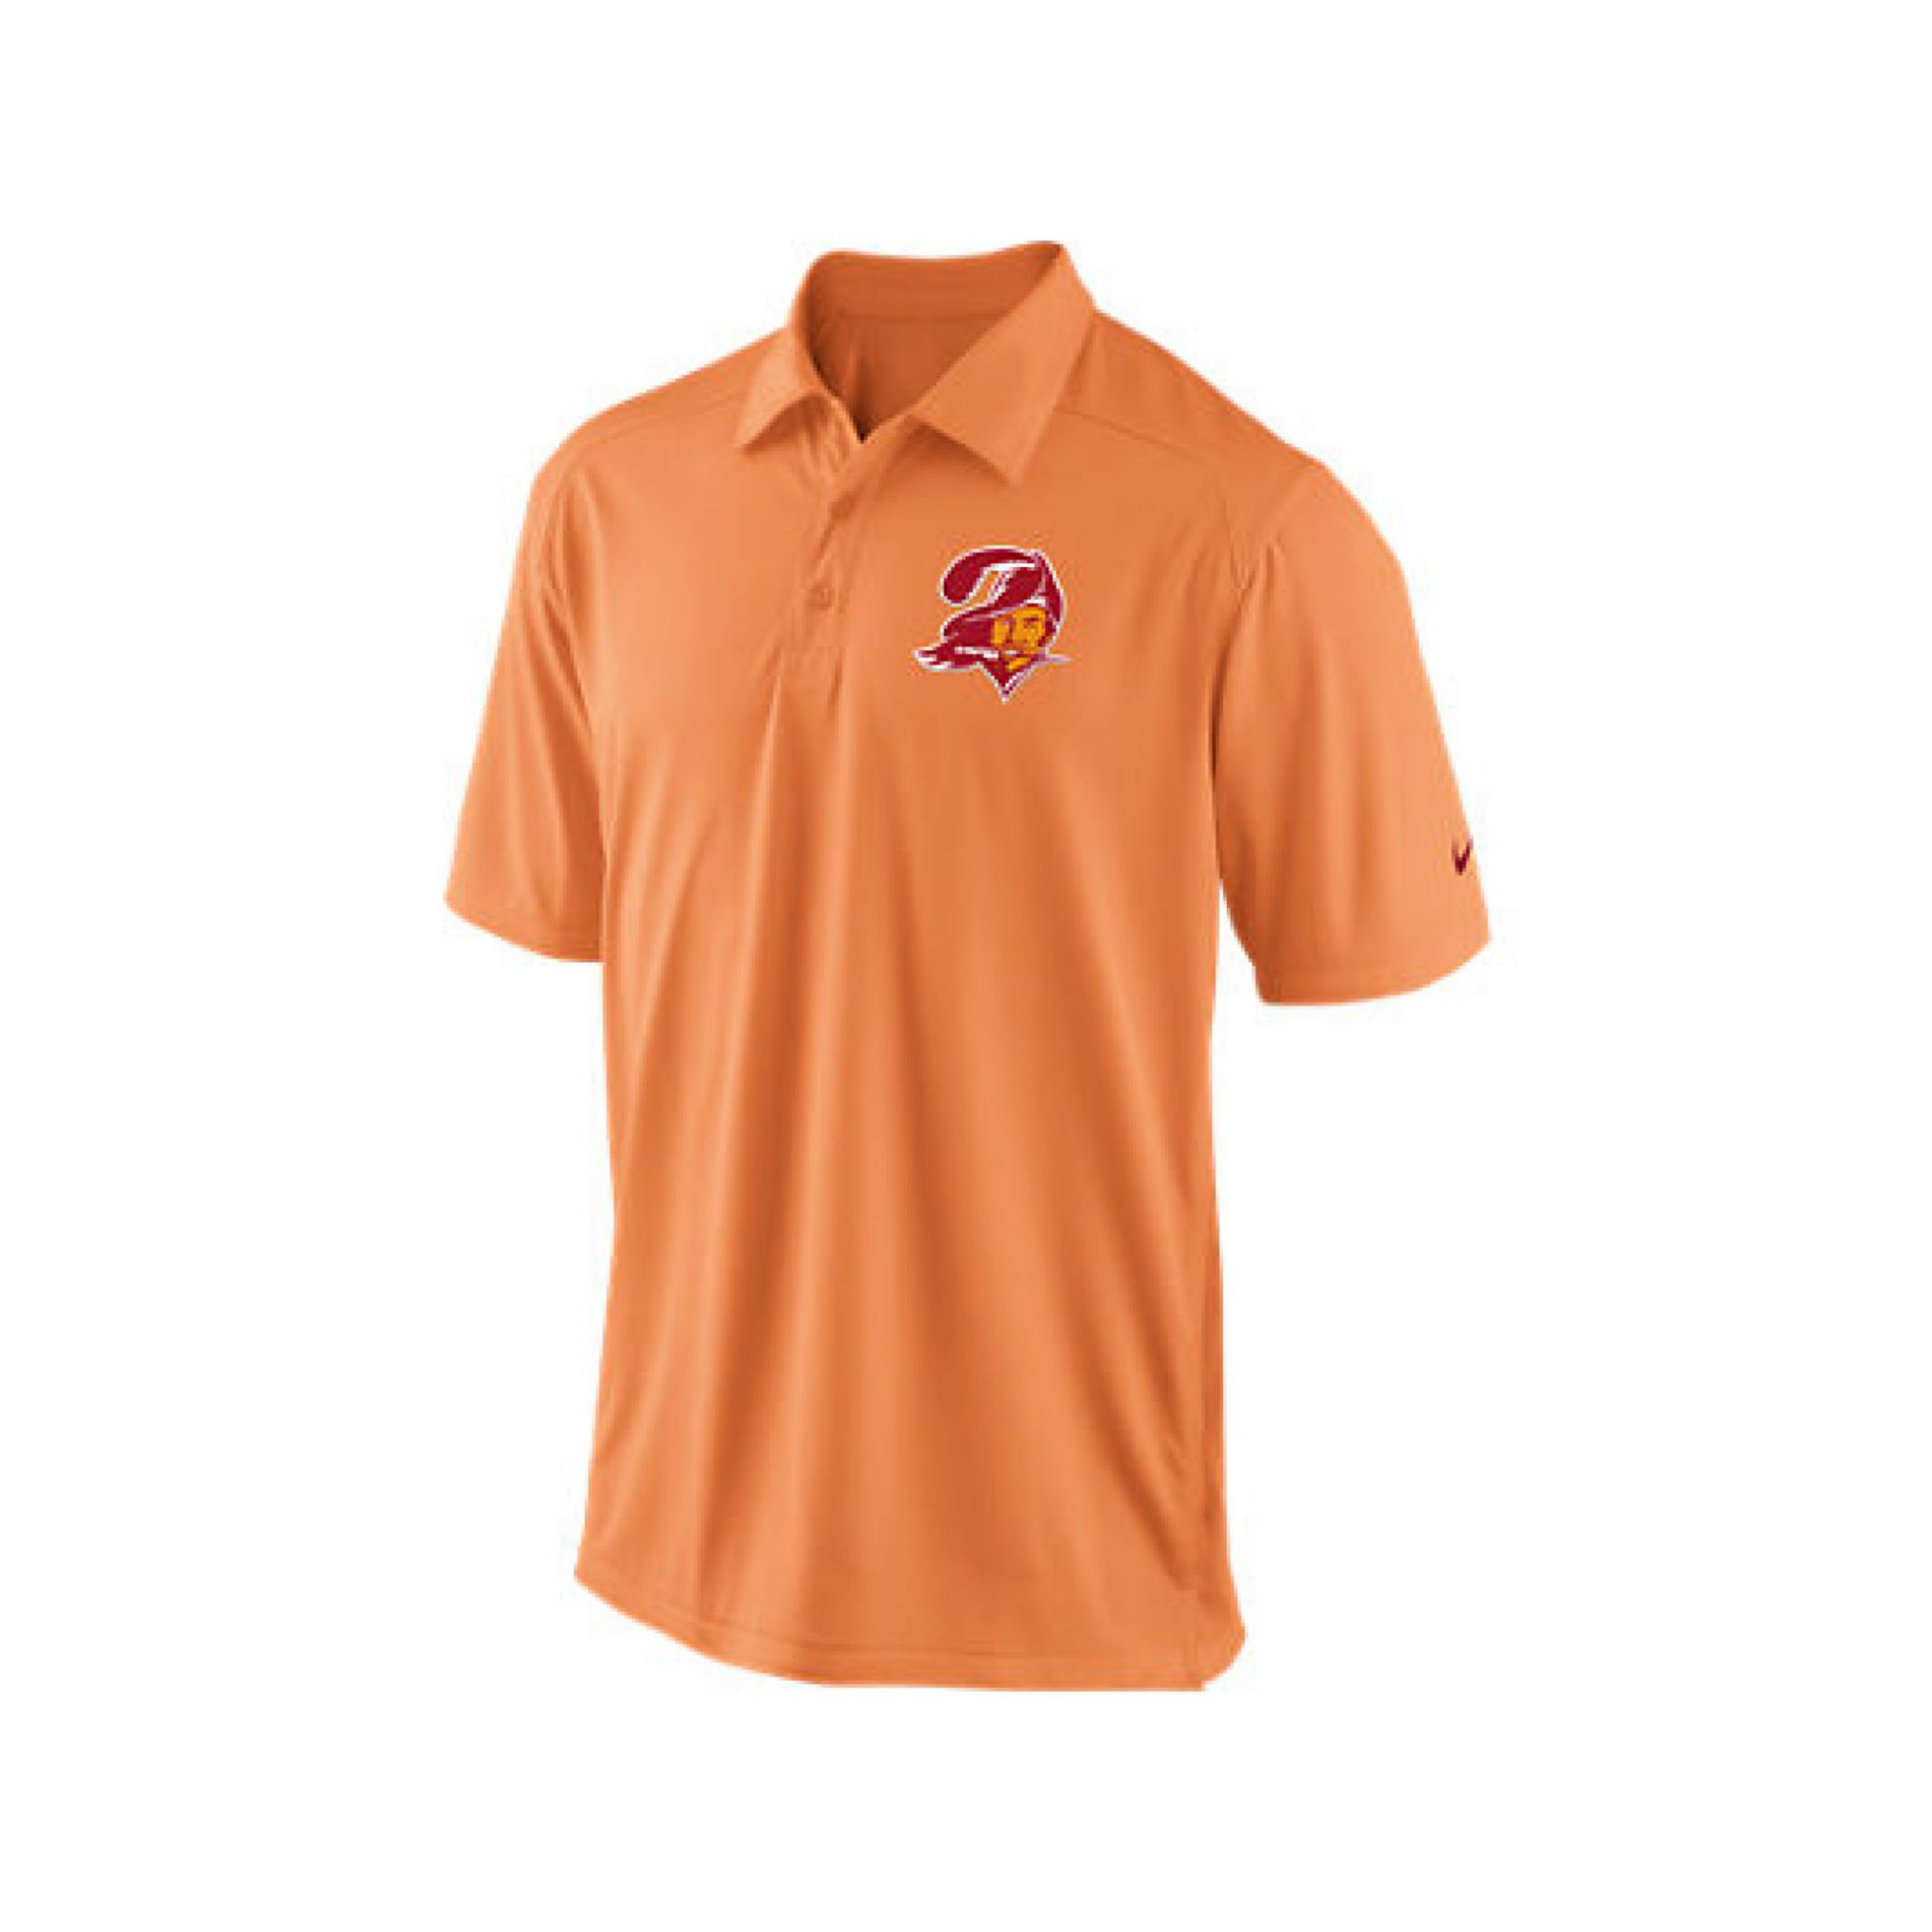 a2bda84d4 Lyst - Nike Mens Tampa Bay Buccaneers Football Coaches Polo Shirt in ...